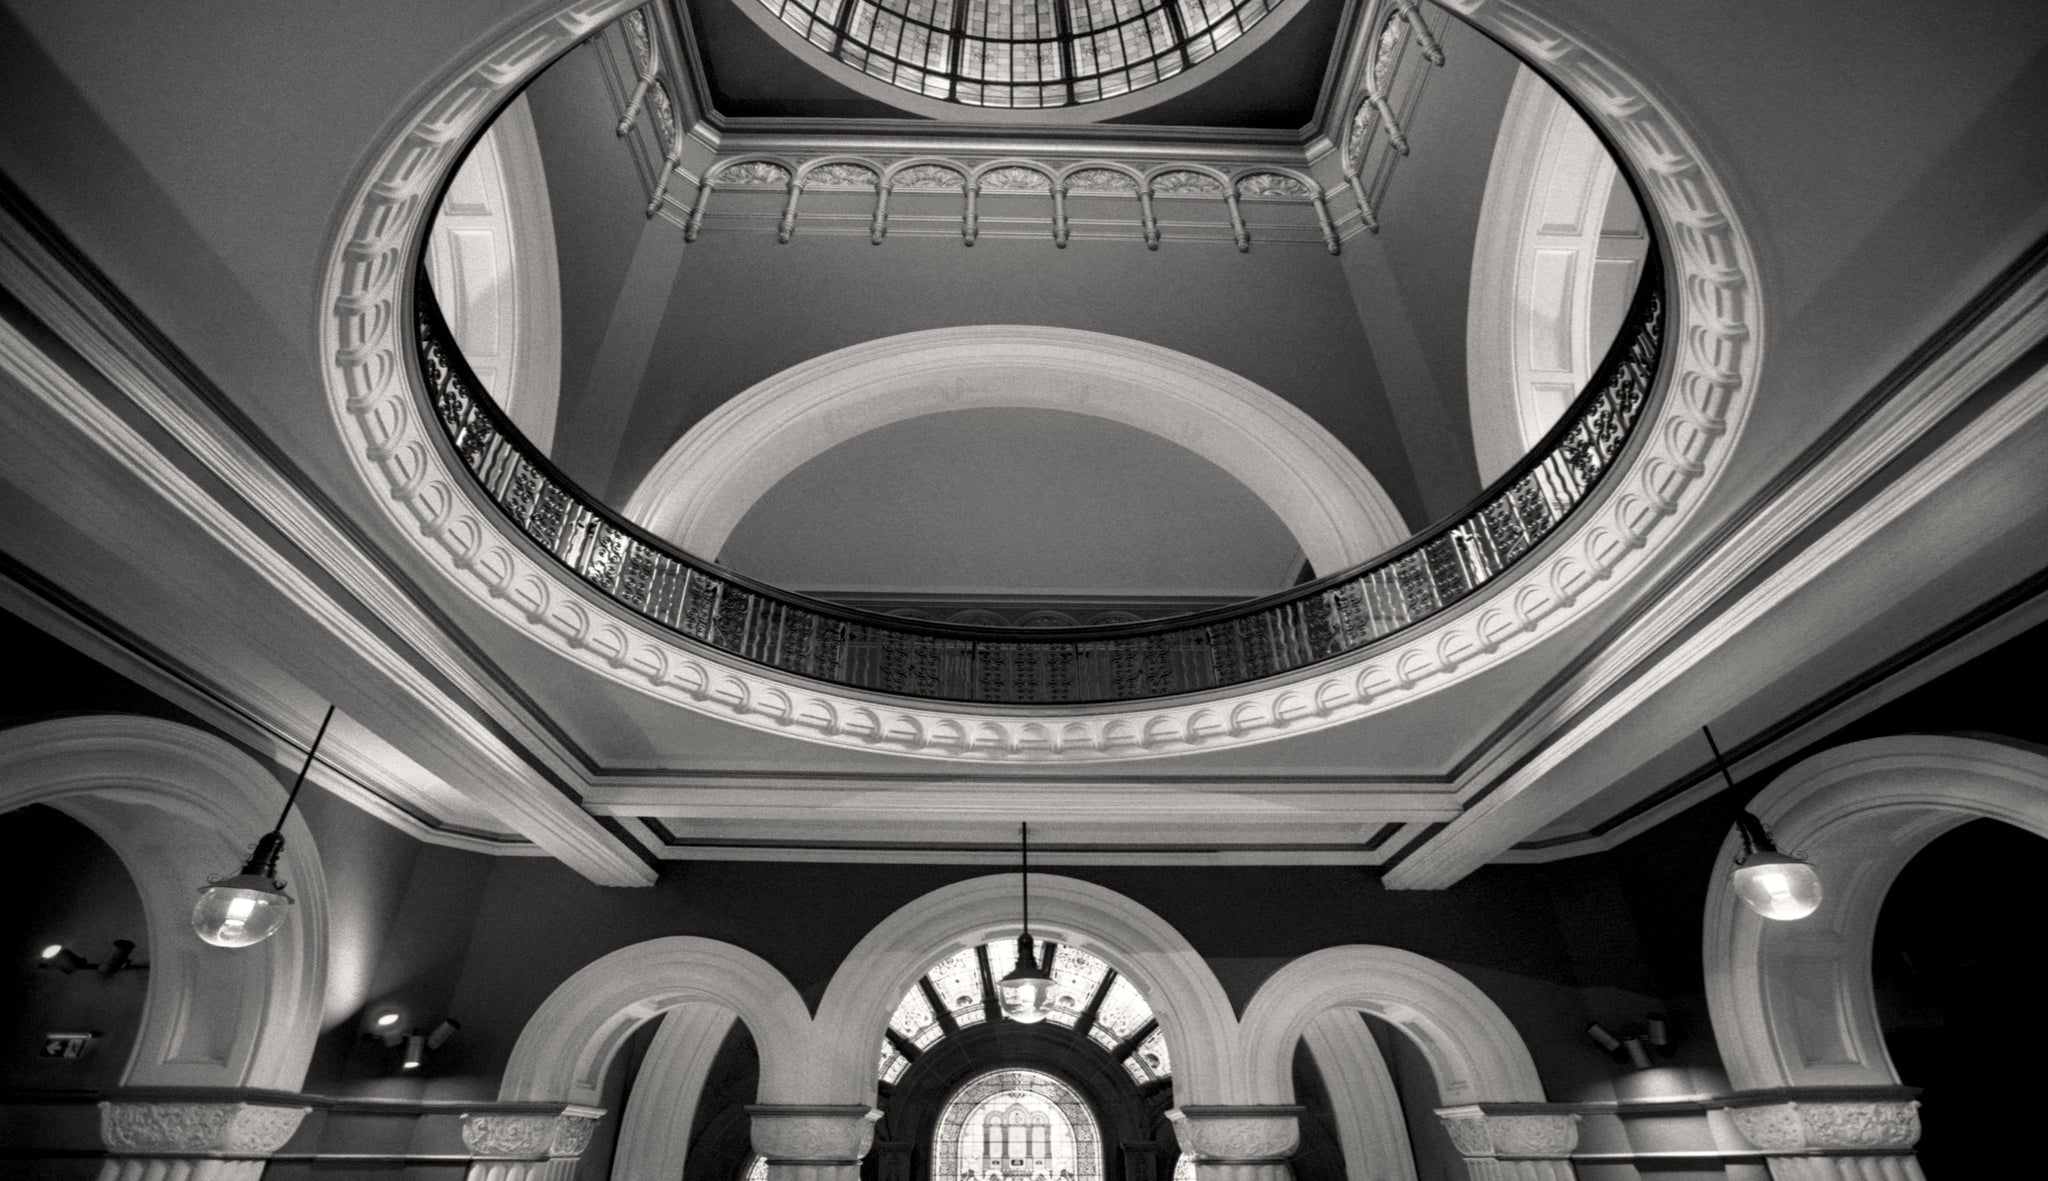 Queen Victoria Building, Sydney Australia, Black and White